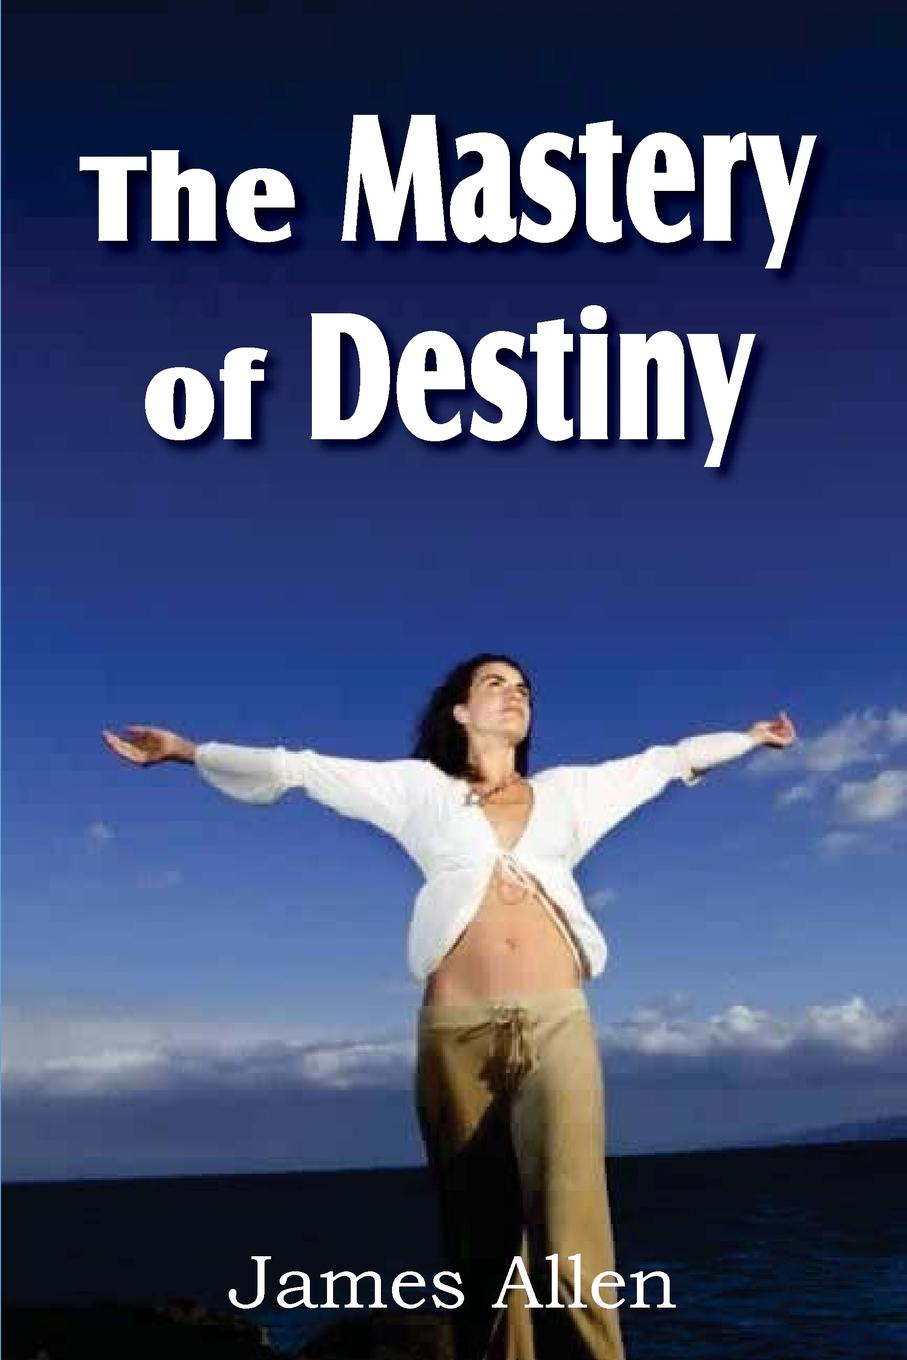 James Allen The Mastery of Destiny keyboard mastery